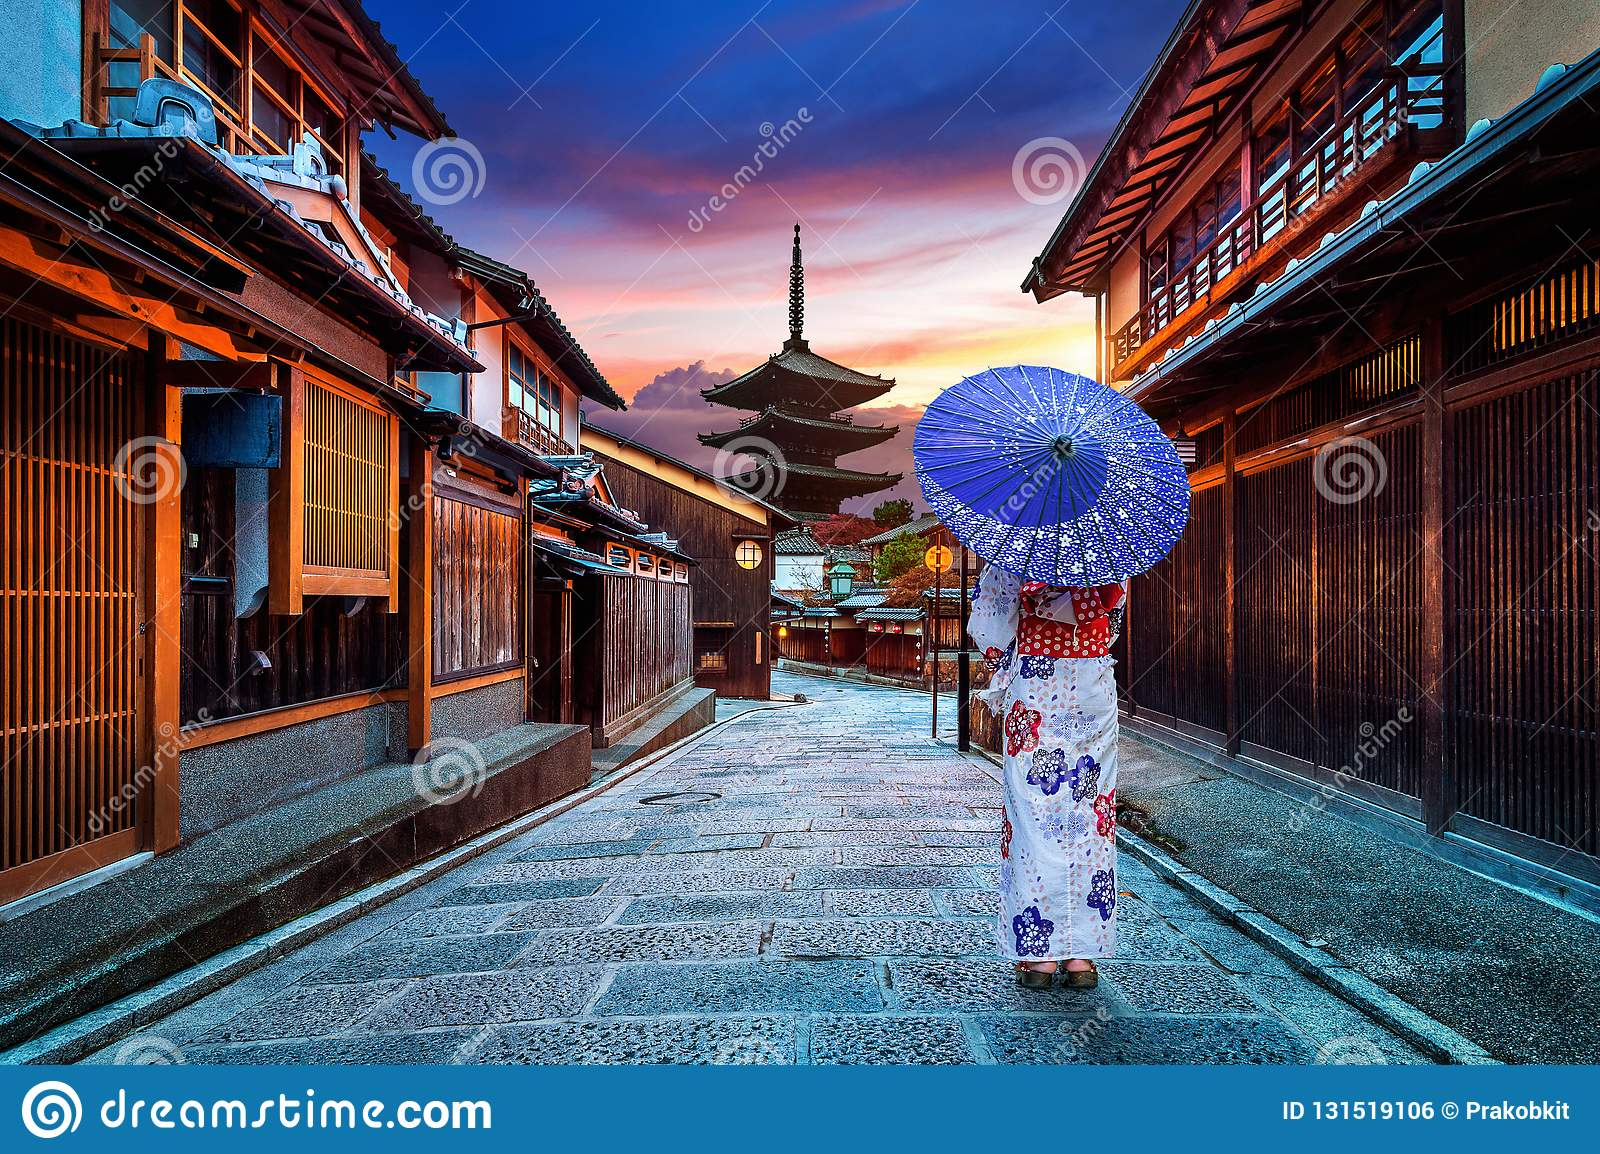 Asian woman wearing japanese traditional kimono at Yasaka Pagoda and Sannen Zaka Street in Kyoto, Japan